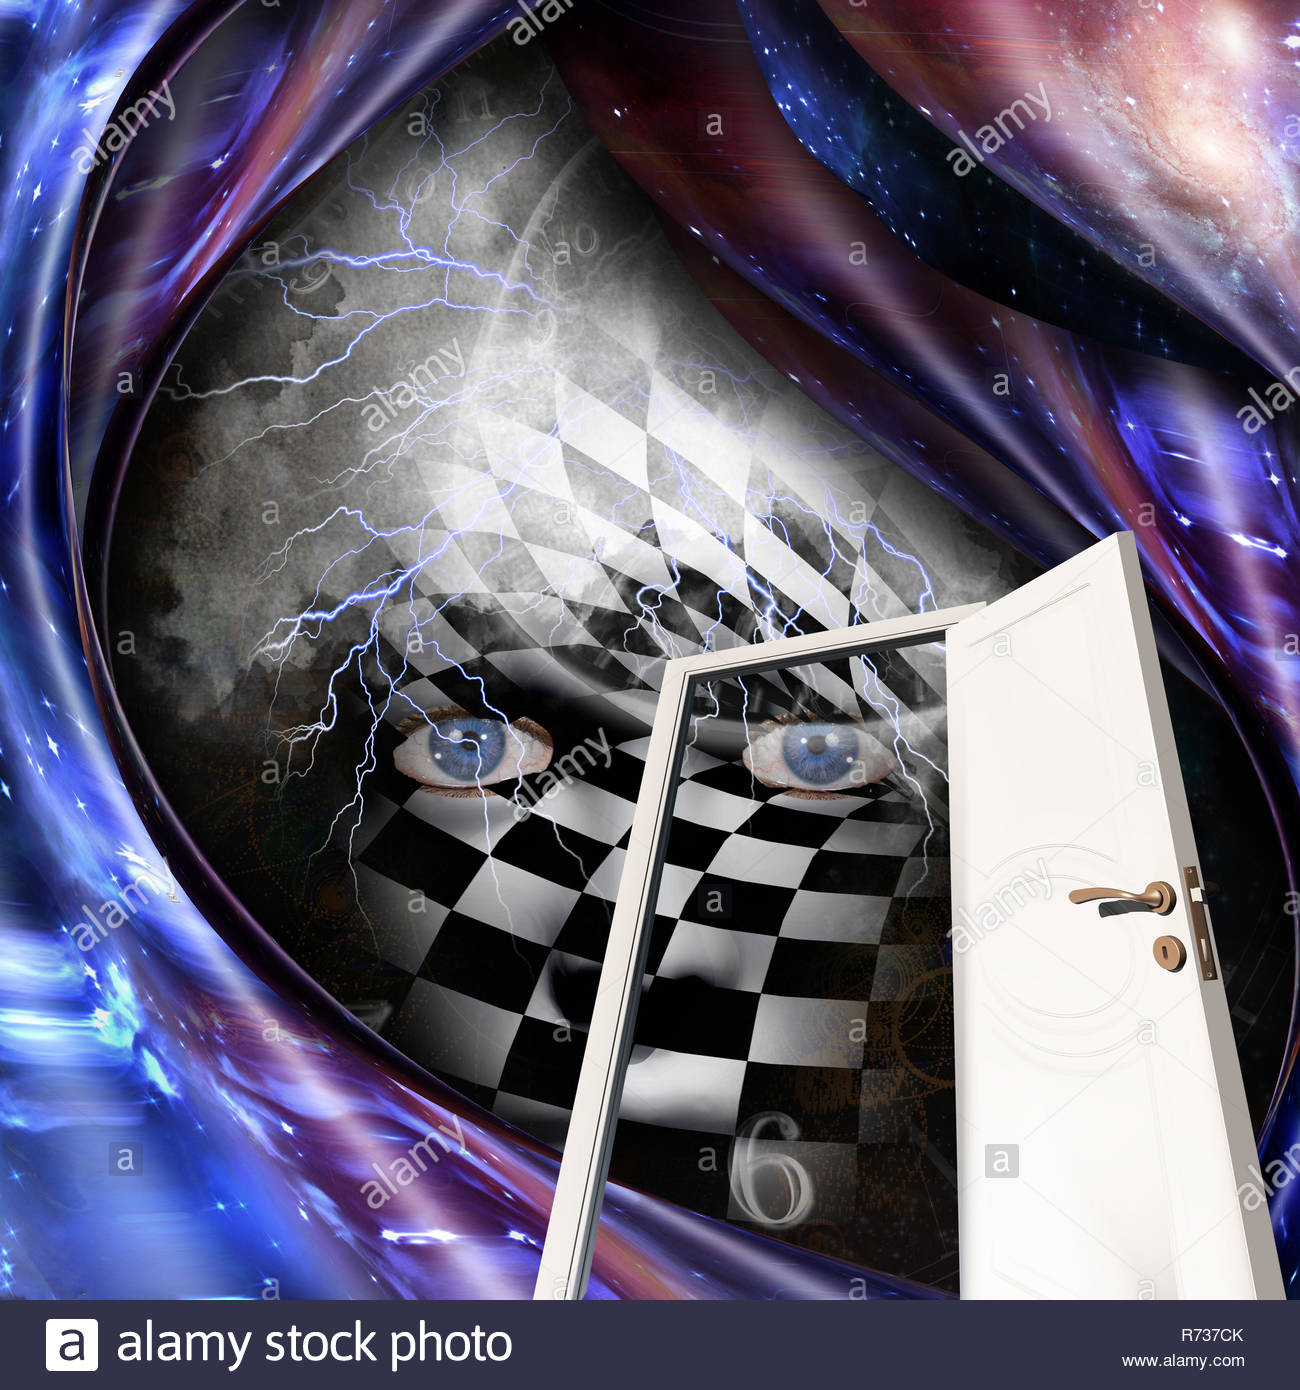 Abstract painting. Chessboard face, time spirals and open door. 3D rendering - Stock Image